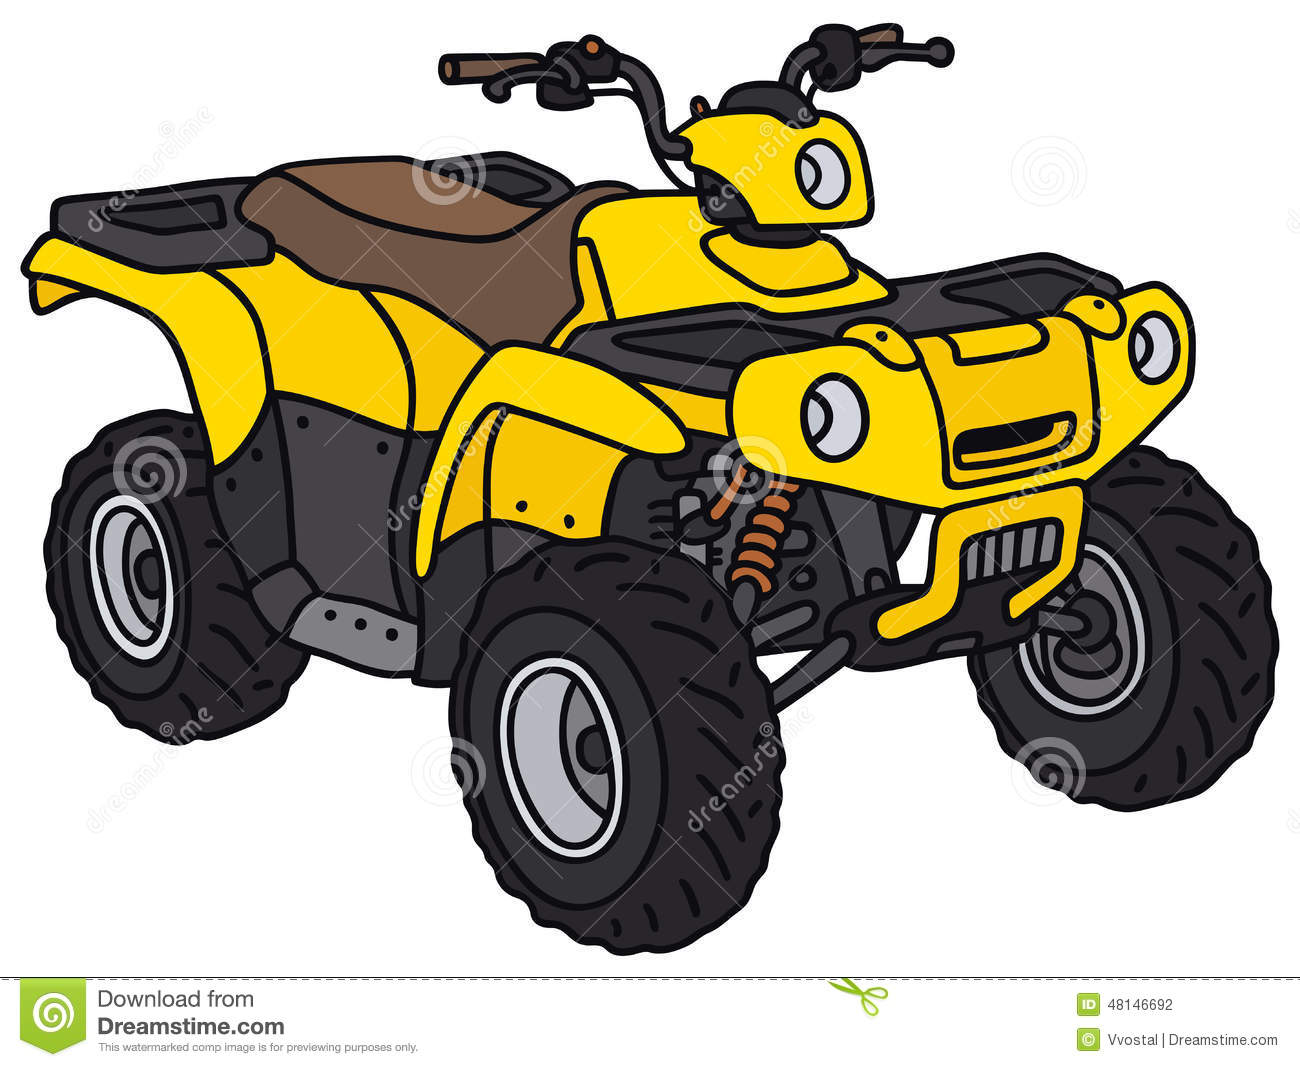 atv stock illustrations 922 atv stock illustrations vectors rh dreamstime com atv clip art black and white atv silhouette clip art